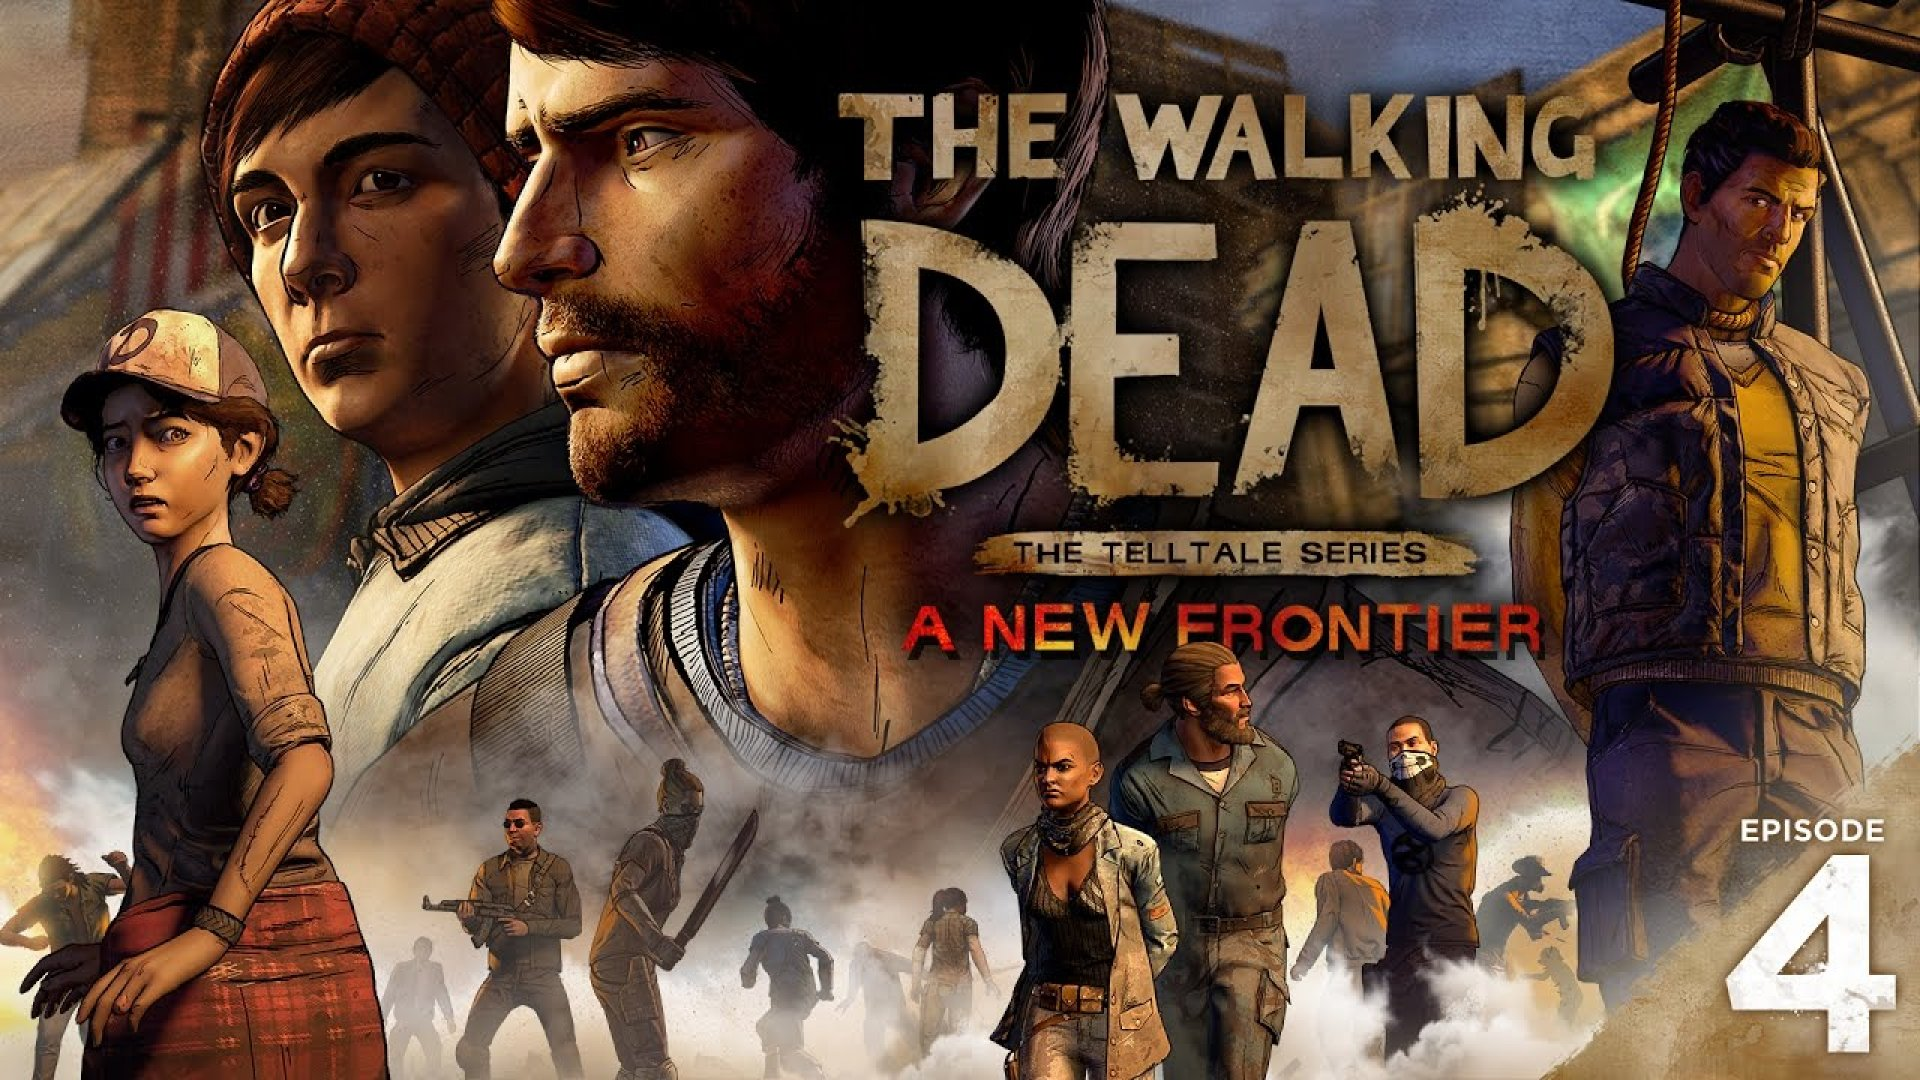 The walking dead video game online free